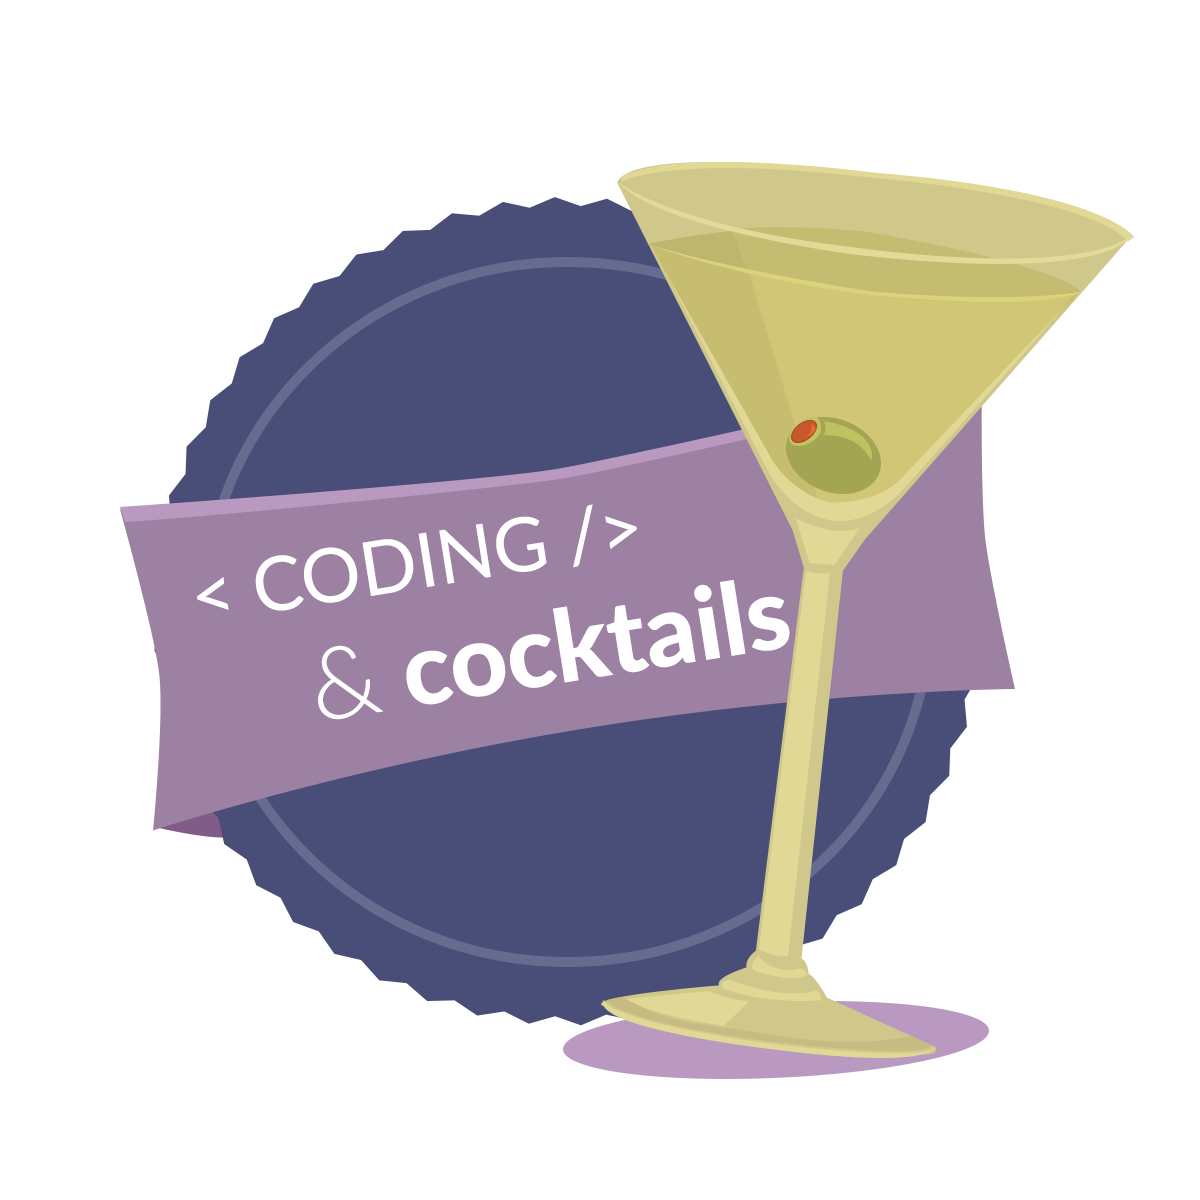 Coding & Cocktails